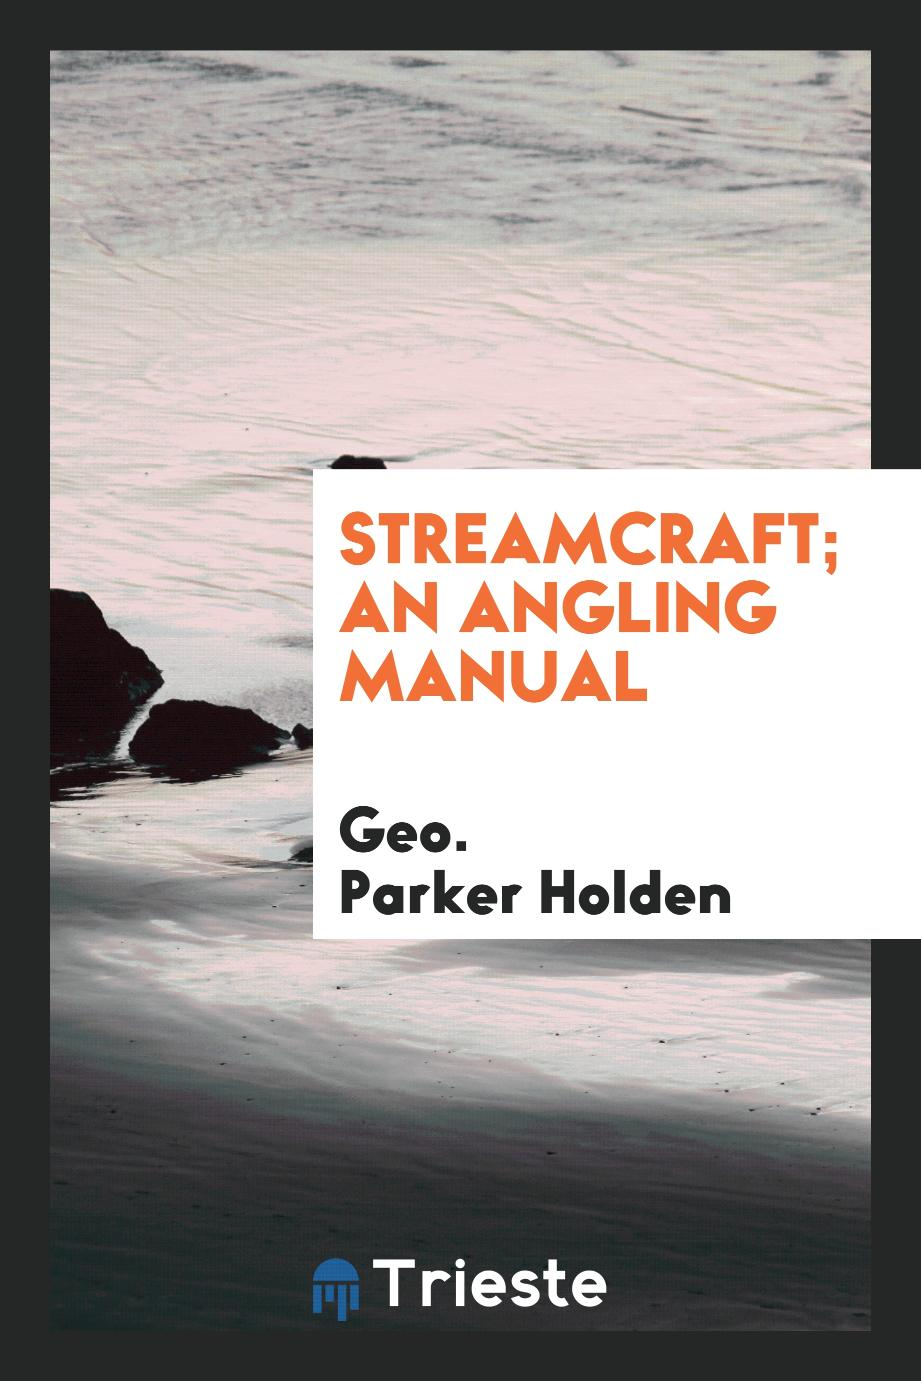 Streamcraft; an angling manual